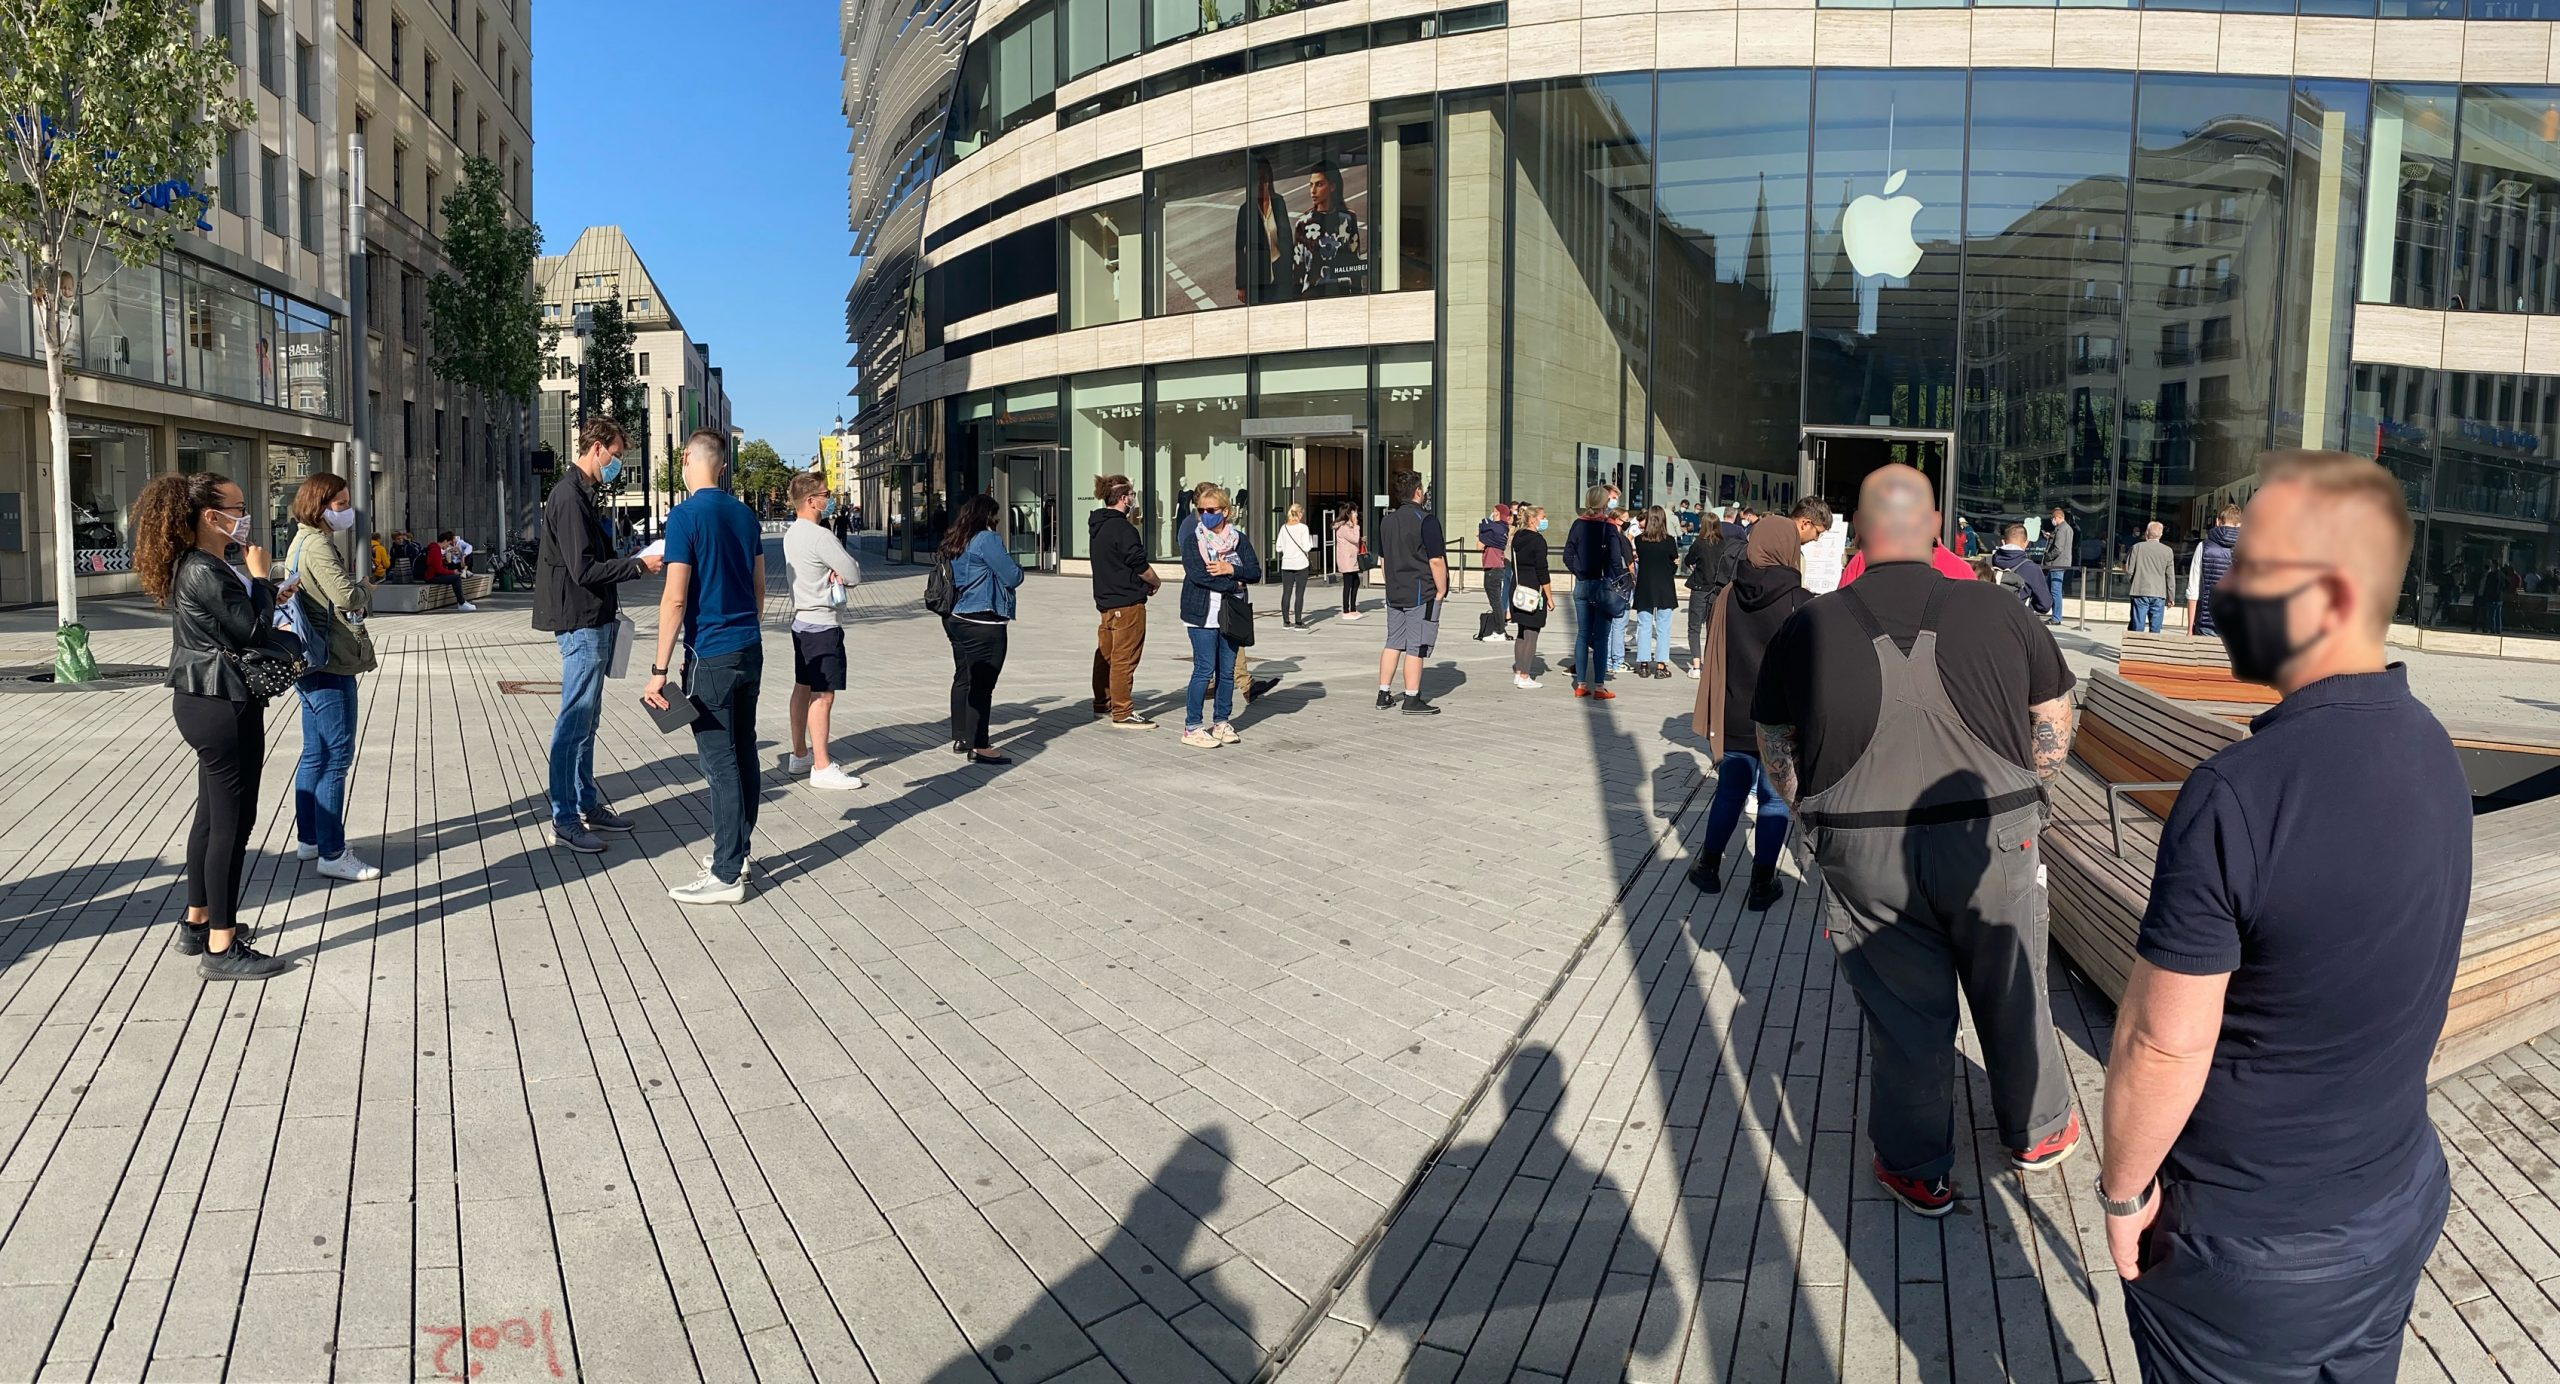 apple-store-schlange-scaled.jpg